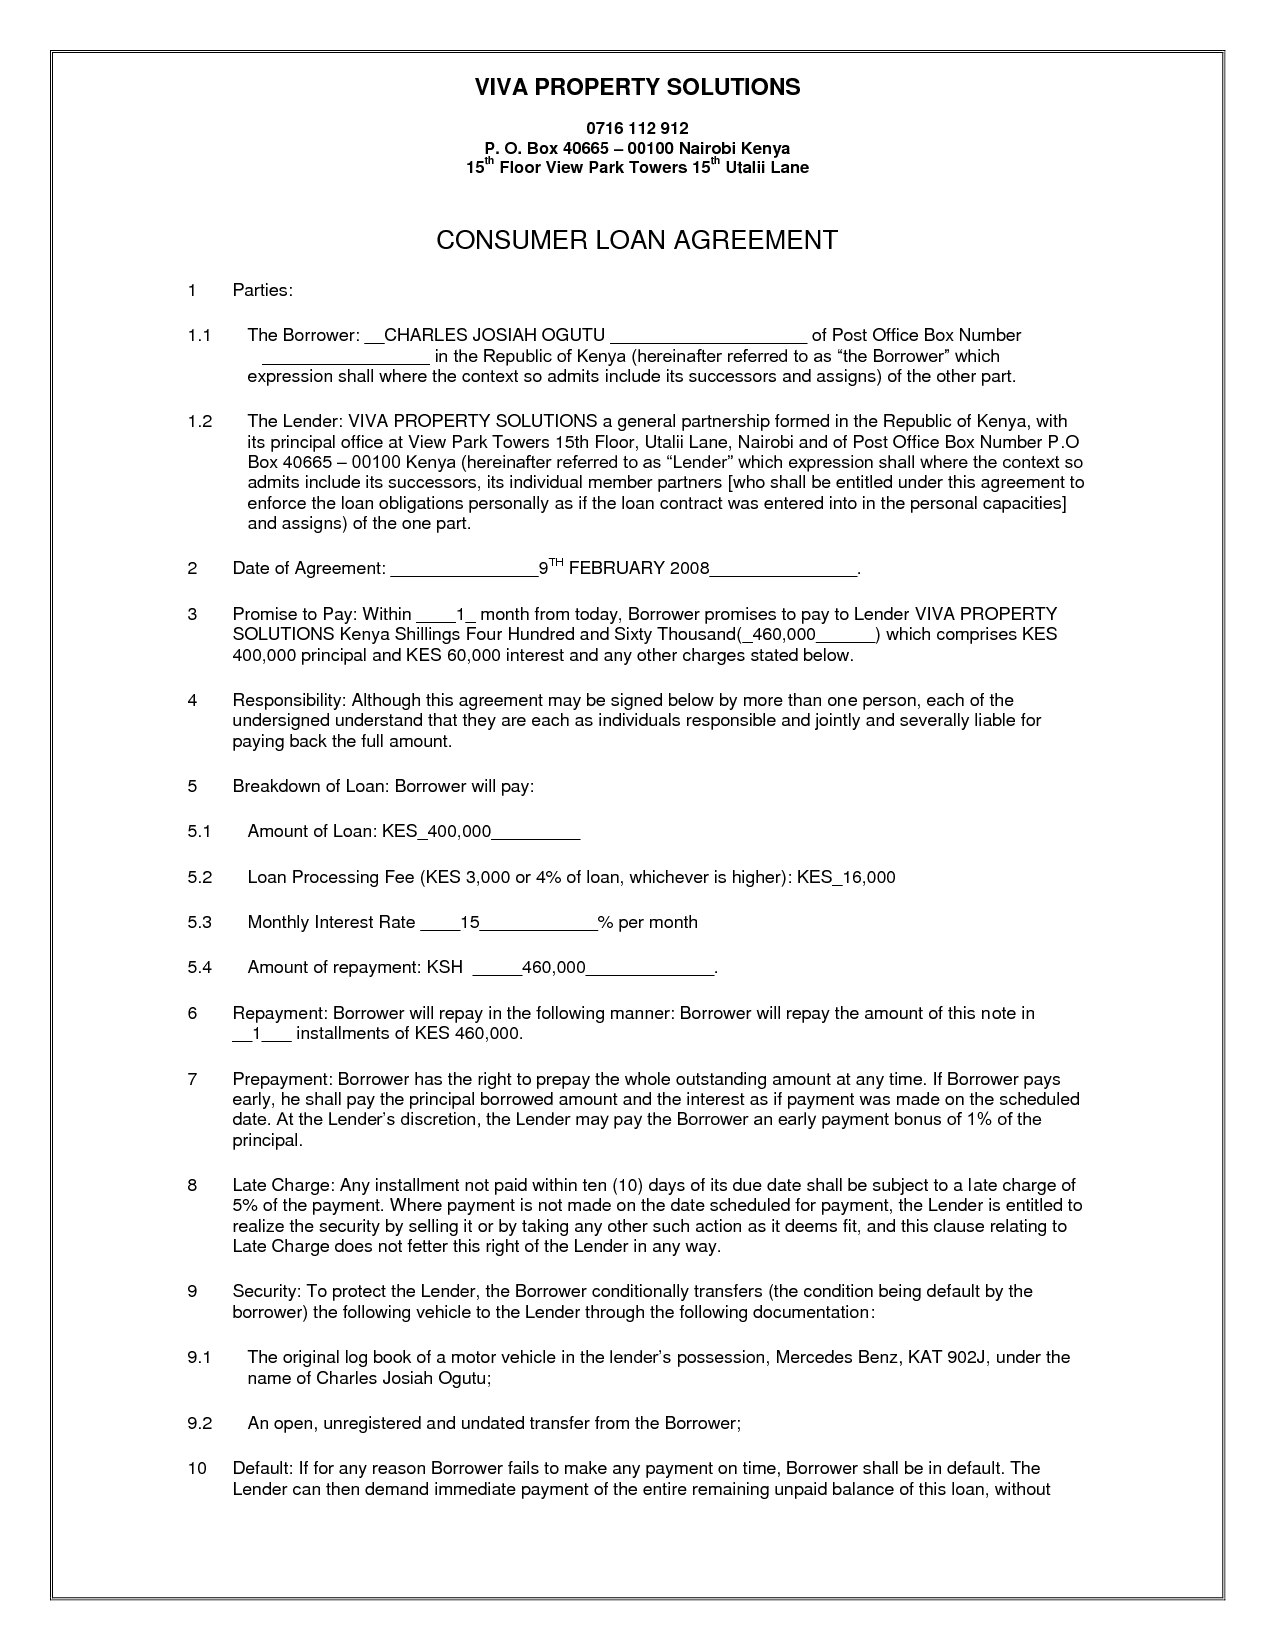 Simple Loan Contract Loan Contract Template 26 Examples In Word Pdf Free, 5 Loan  Agreement Templates To Write Perfect Agreements, Loan Contract Template 26  ...